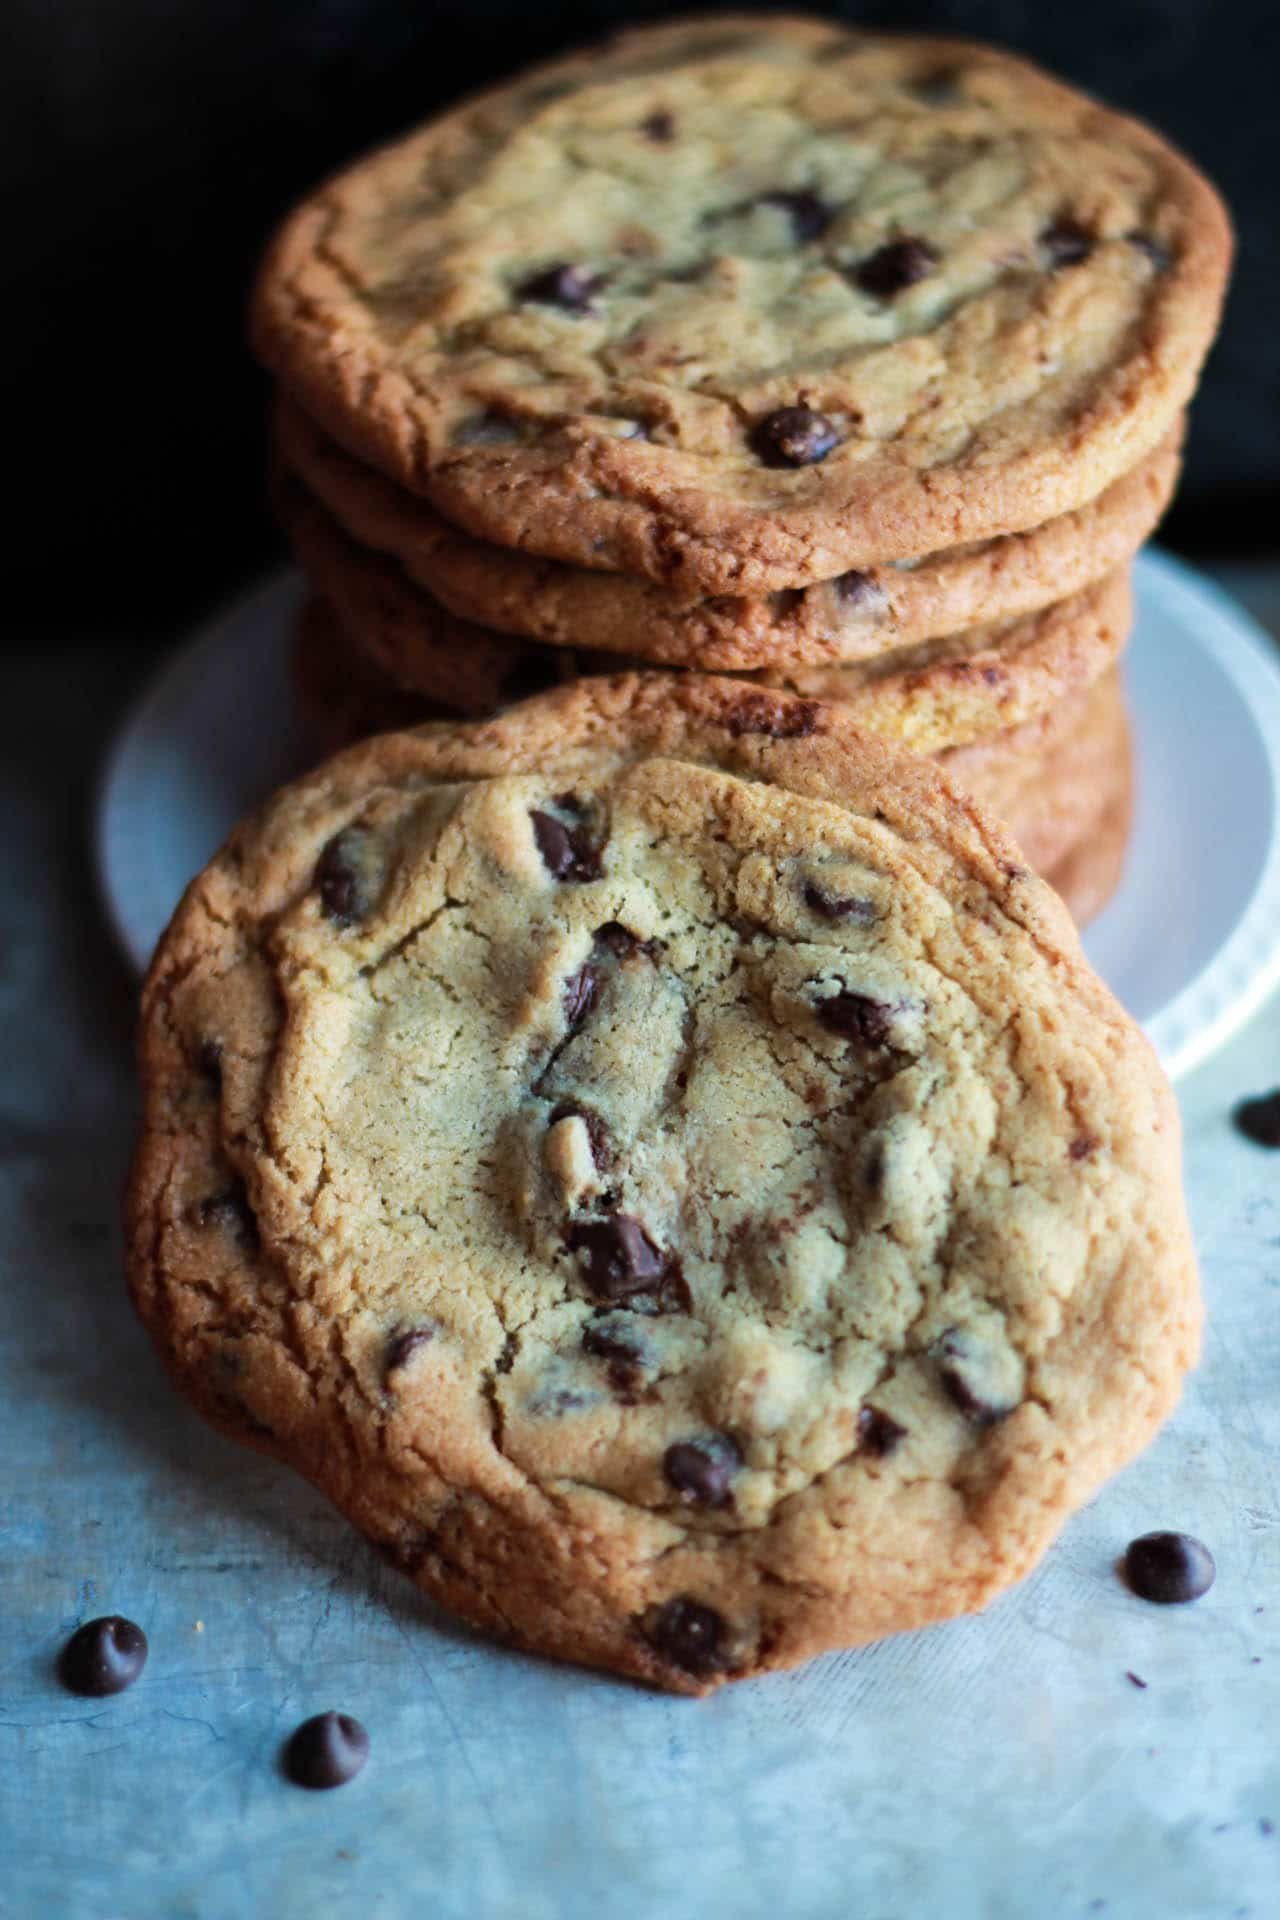 Making the Perfect Chocolate Chip Cookie - Erren's Kitchen